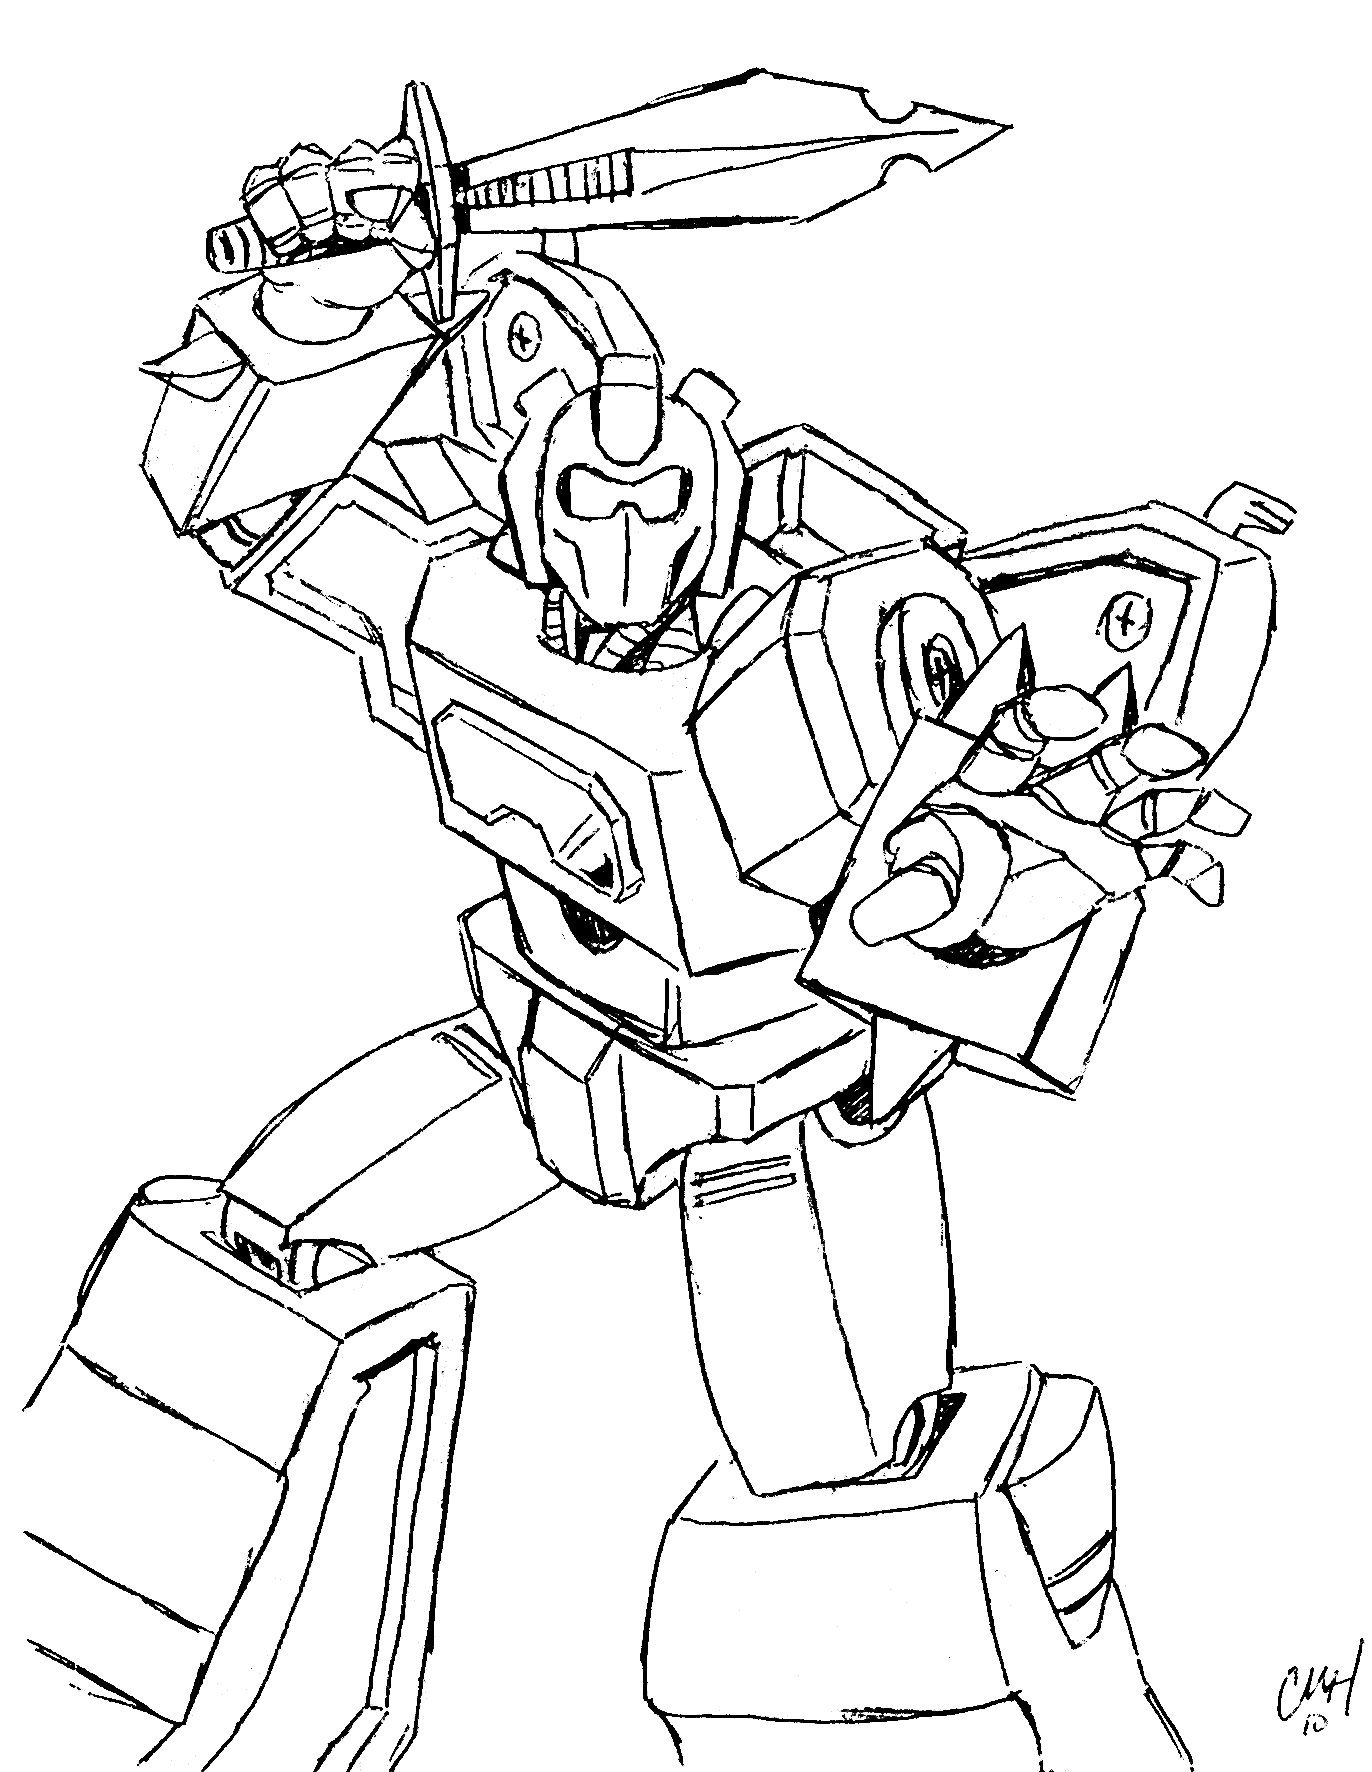 Free Printable Transformers Coloring Pages For Kids | värityskuvia ...